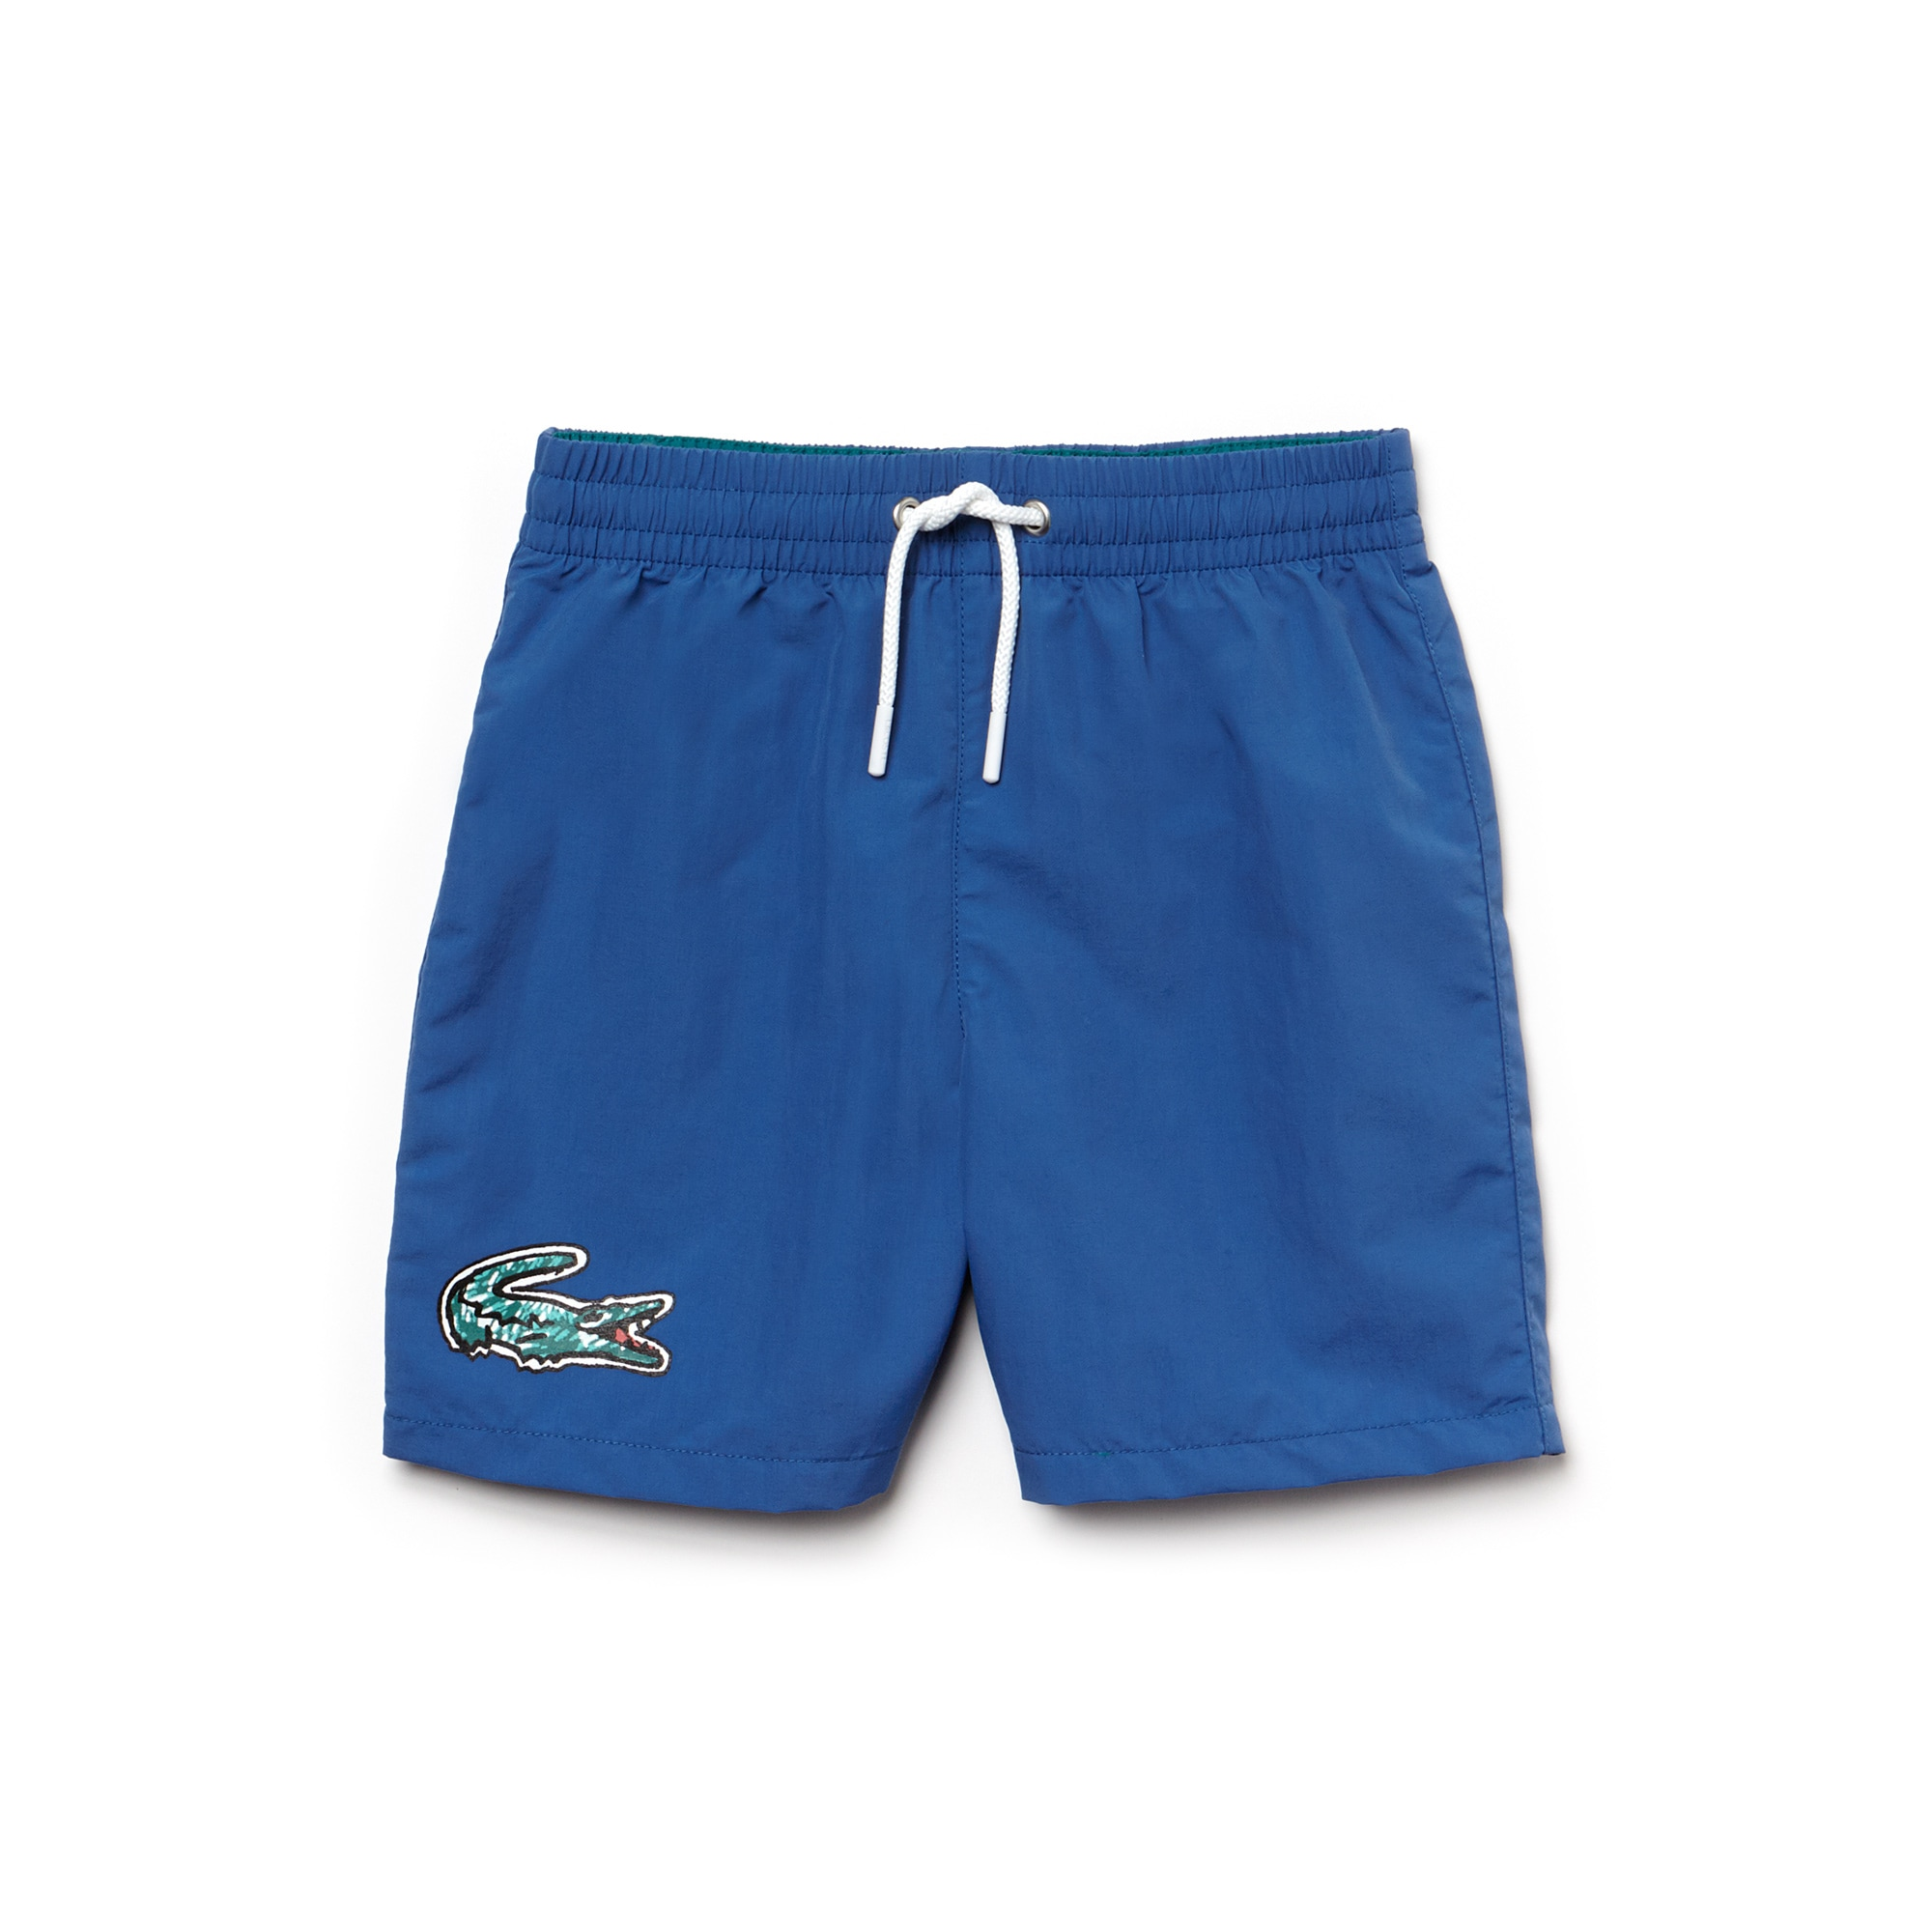 Boys' Oversized Crocodile Canvas Swimming Trunks